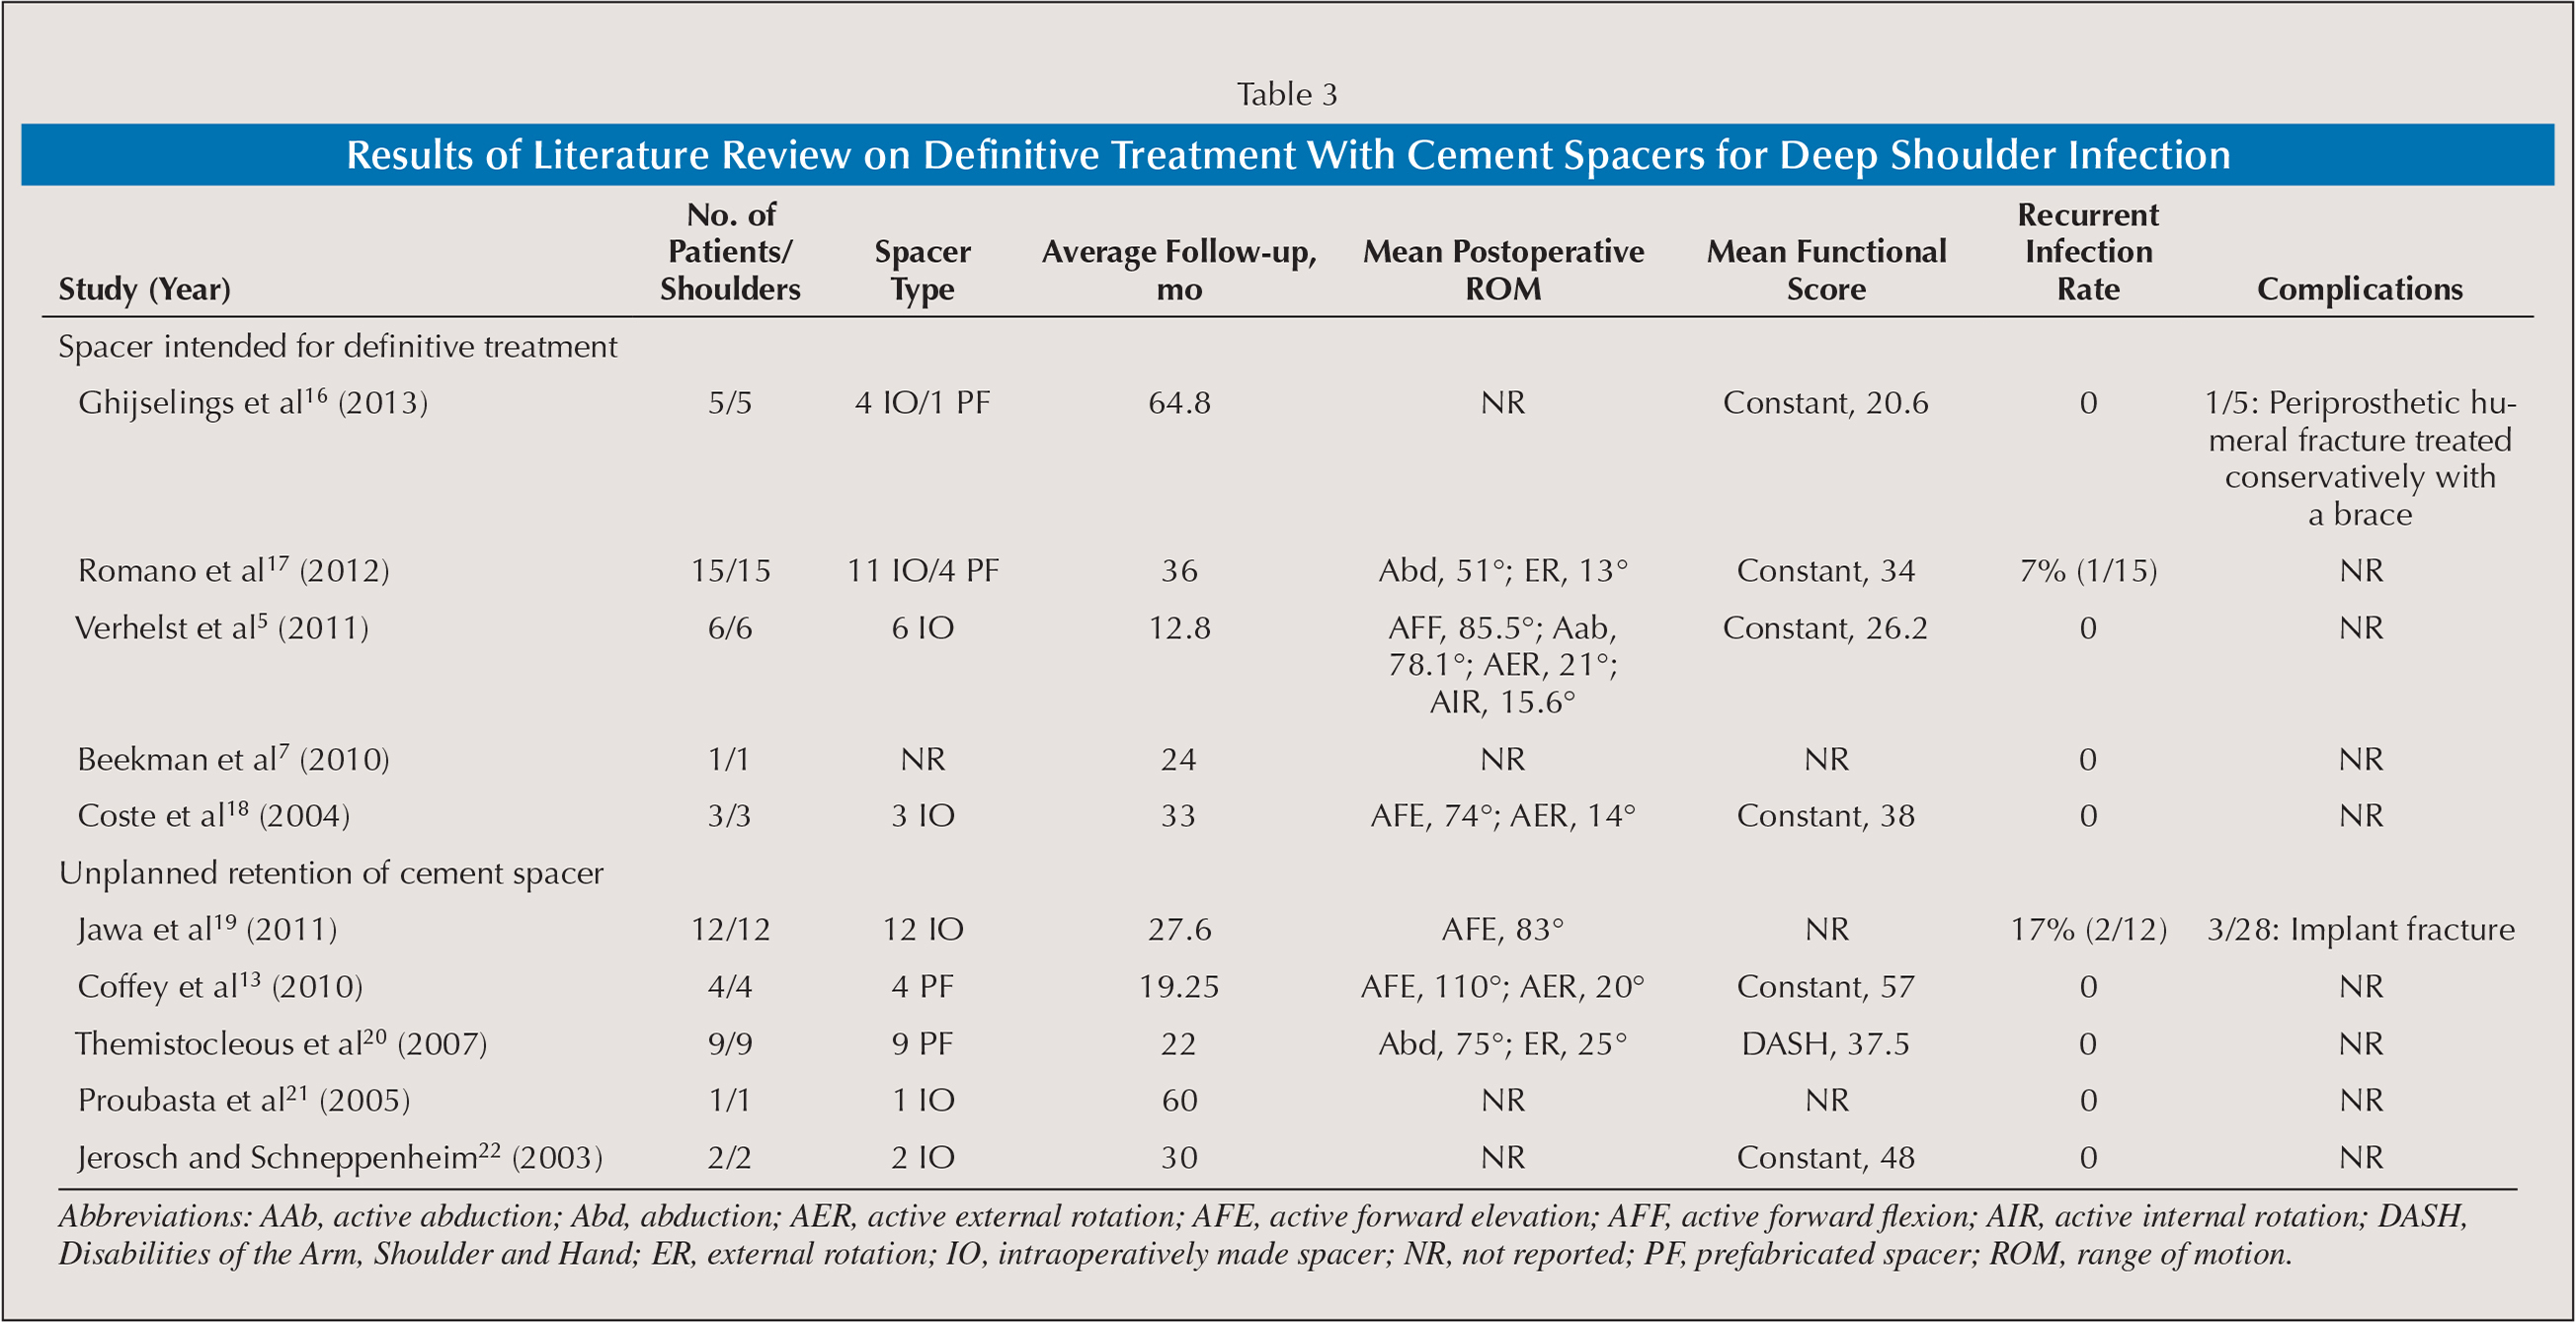 Results of Literature Review on Definitive Treatment With Cement Spacers for Deep Shoulder Infection